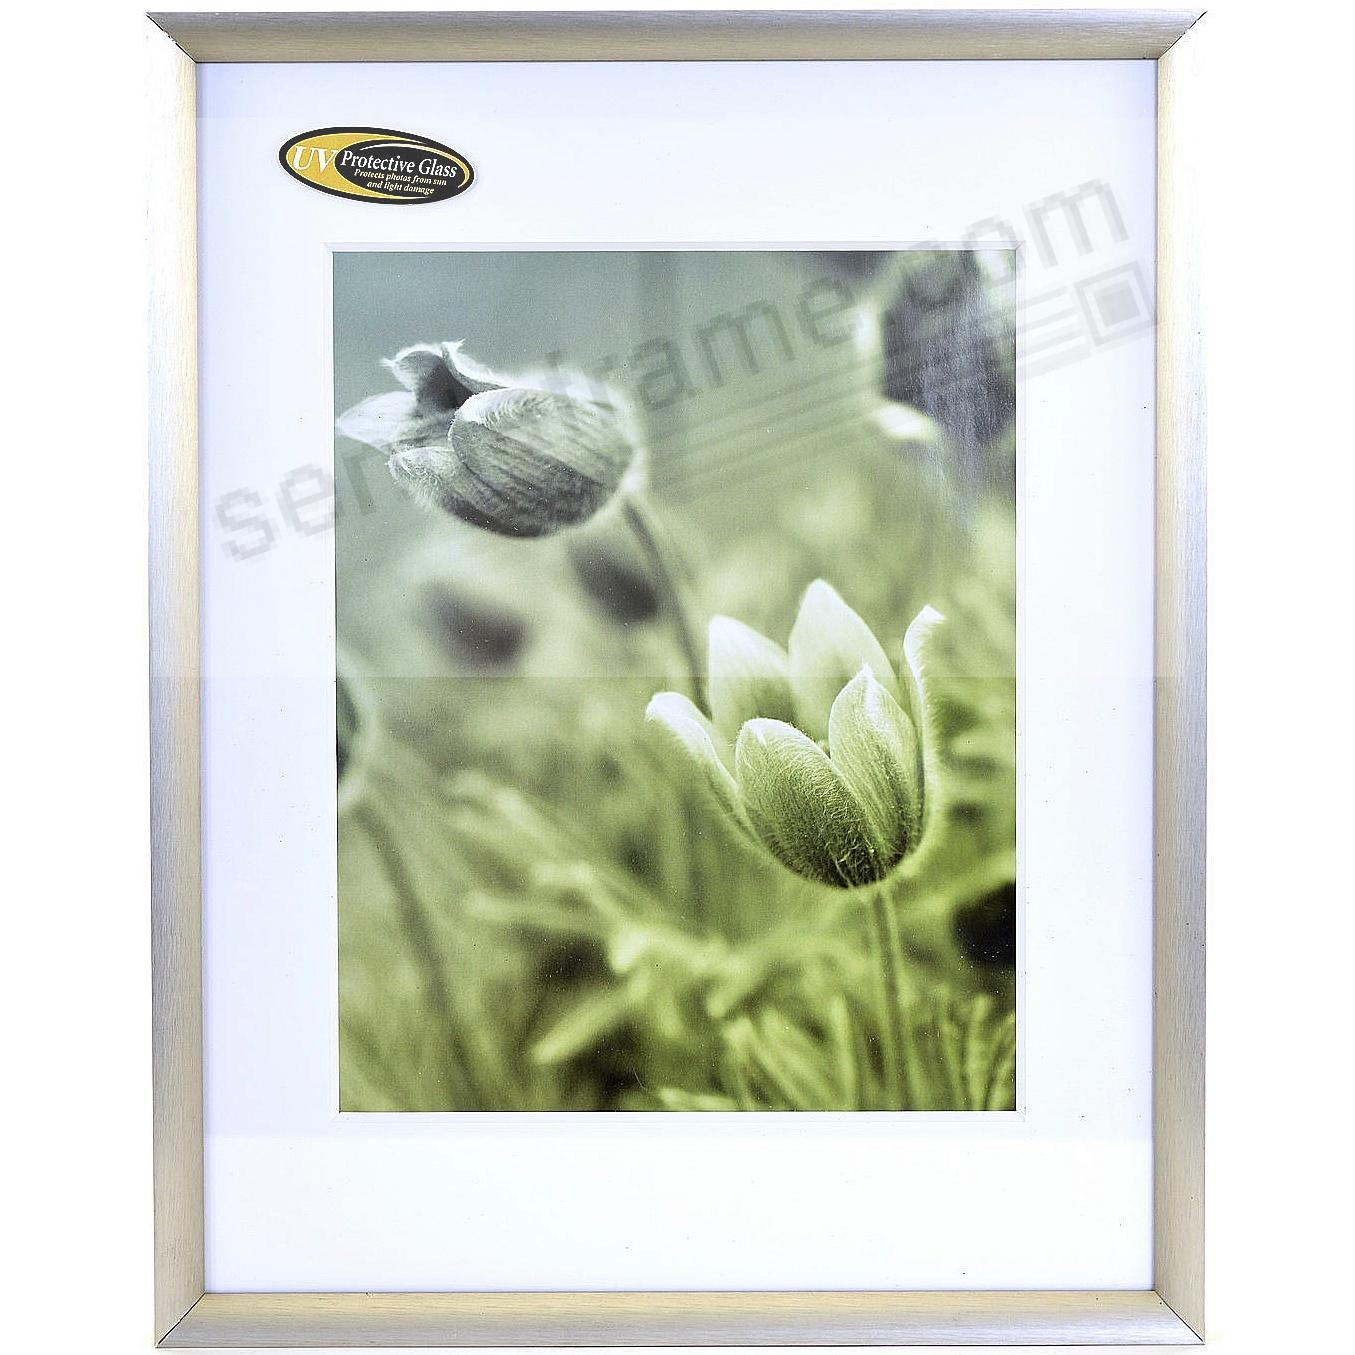 Satin German Silver Cosmopolitan Matted Metallic Frame 11x148x10